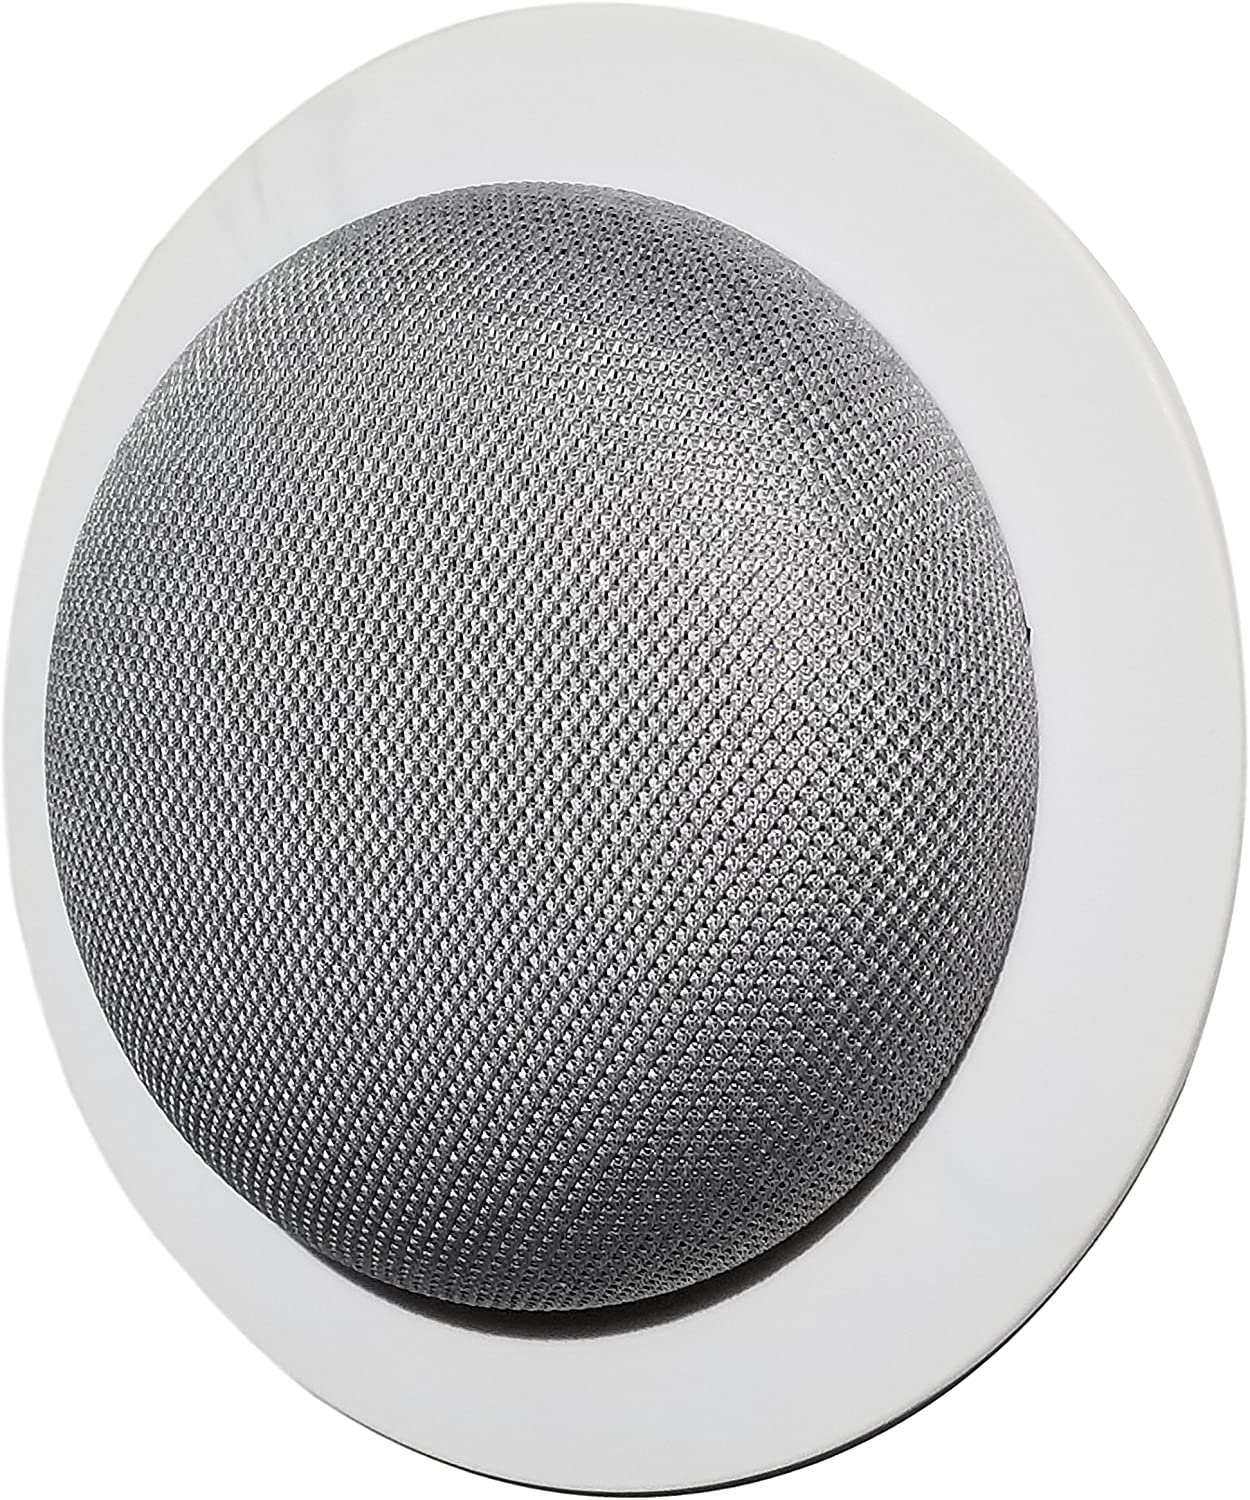 Amazon Com Mount Genie Simple Built In Wall Or Ceiling Mount For Google Home Mini 1st Gen Award Winning Design Improves Sound And Appearance Designed In Usa 1 Pack Home Audio